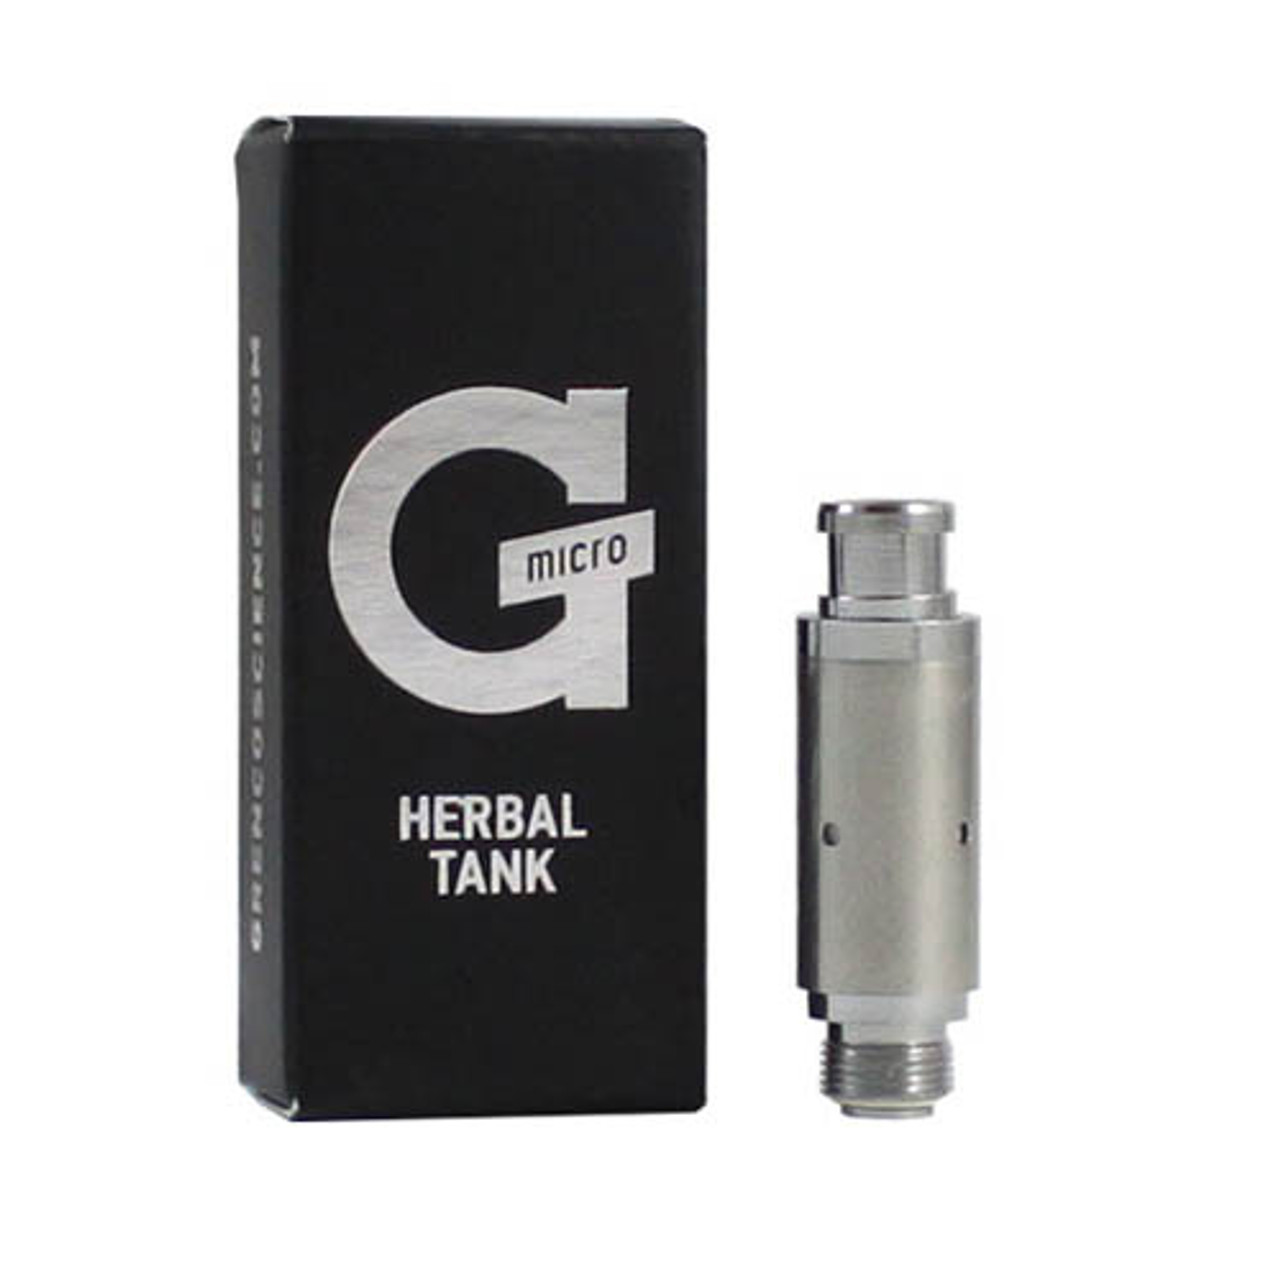 Grenco Micro G Threaded Herbal Tank